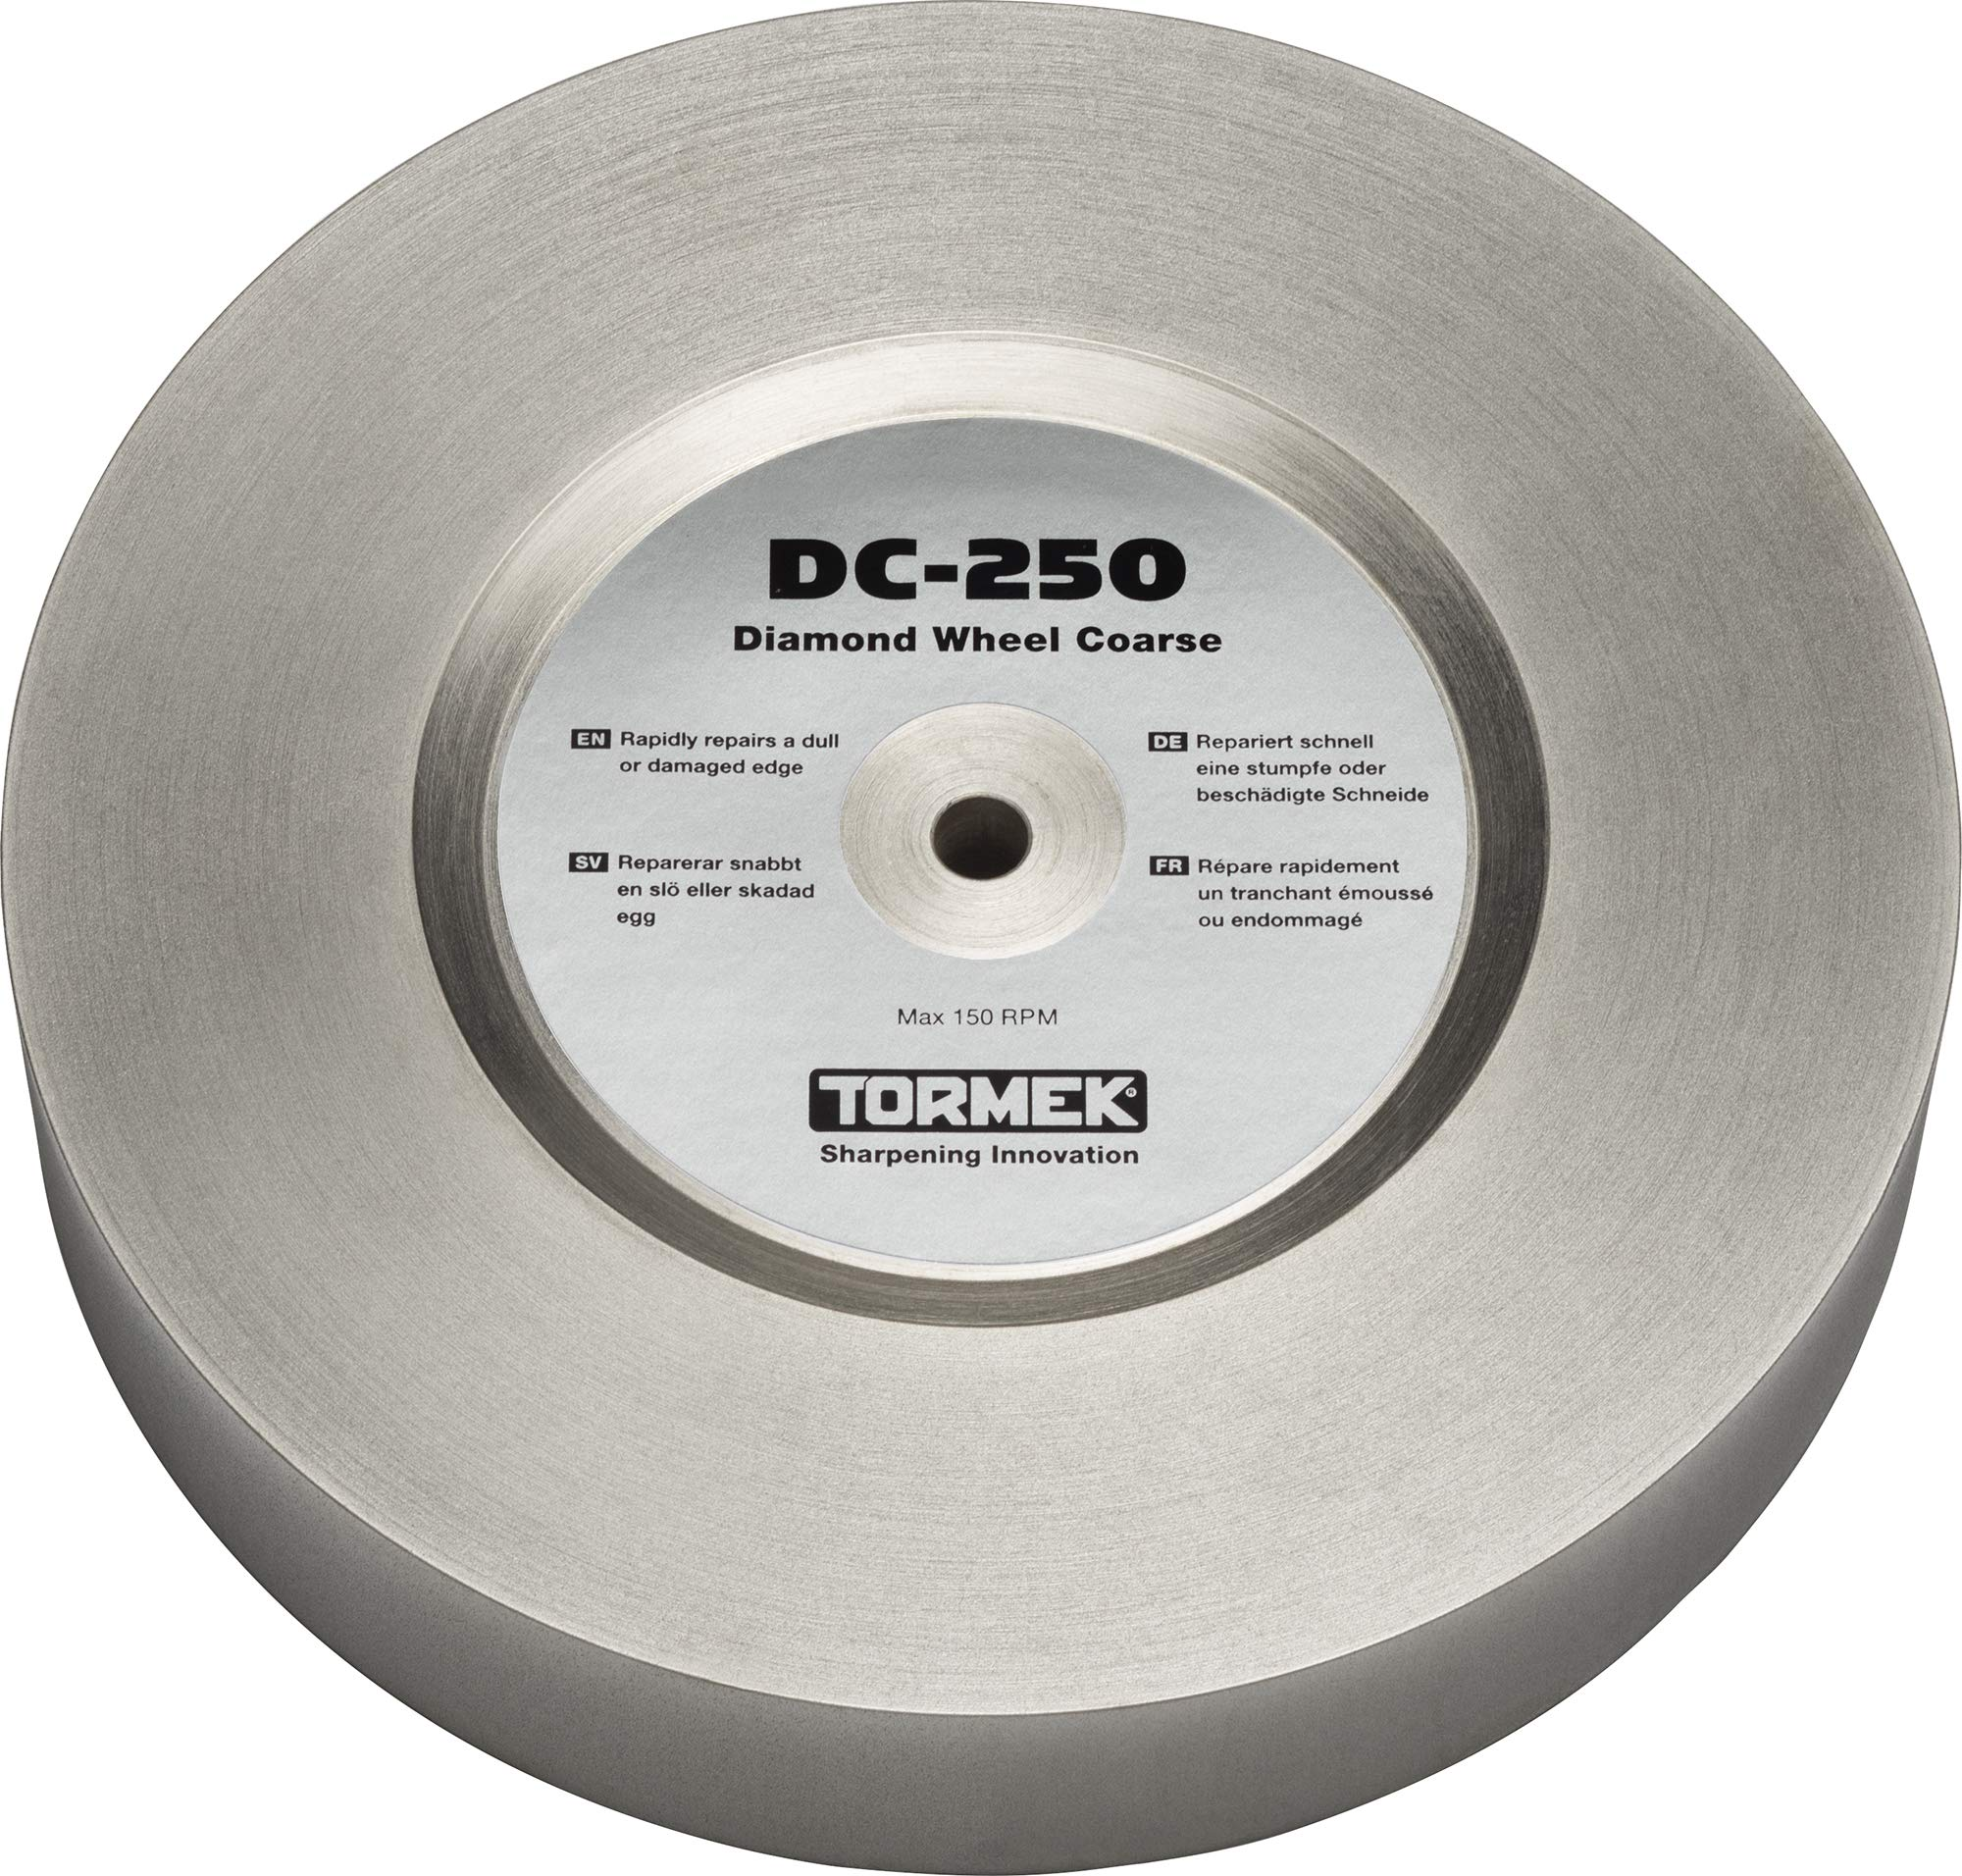 Tormek 360 Grit Diamond Wheel Coarse - DC-250 for T-8 and T-7